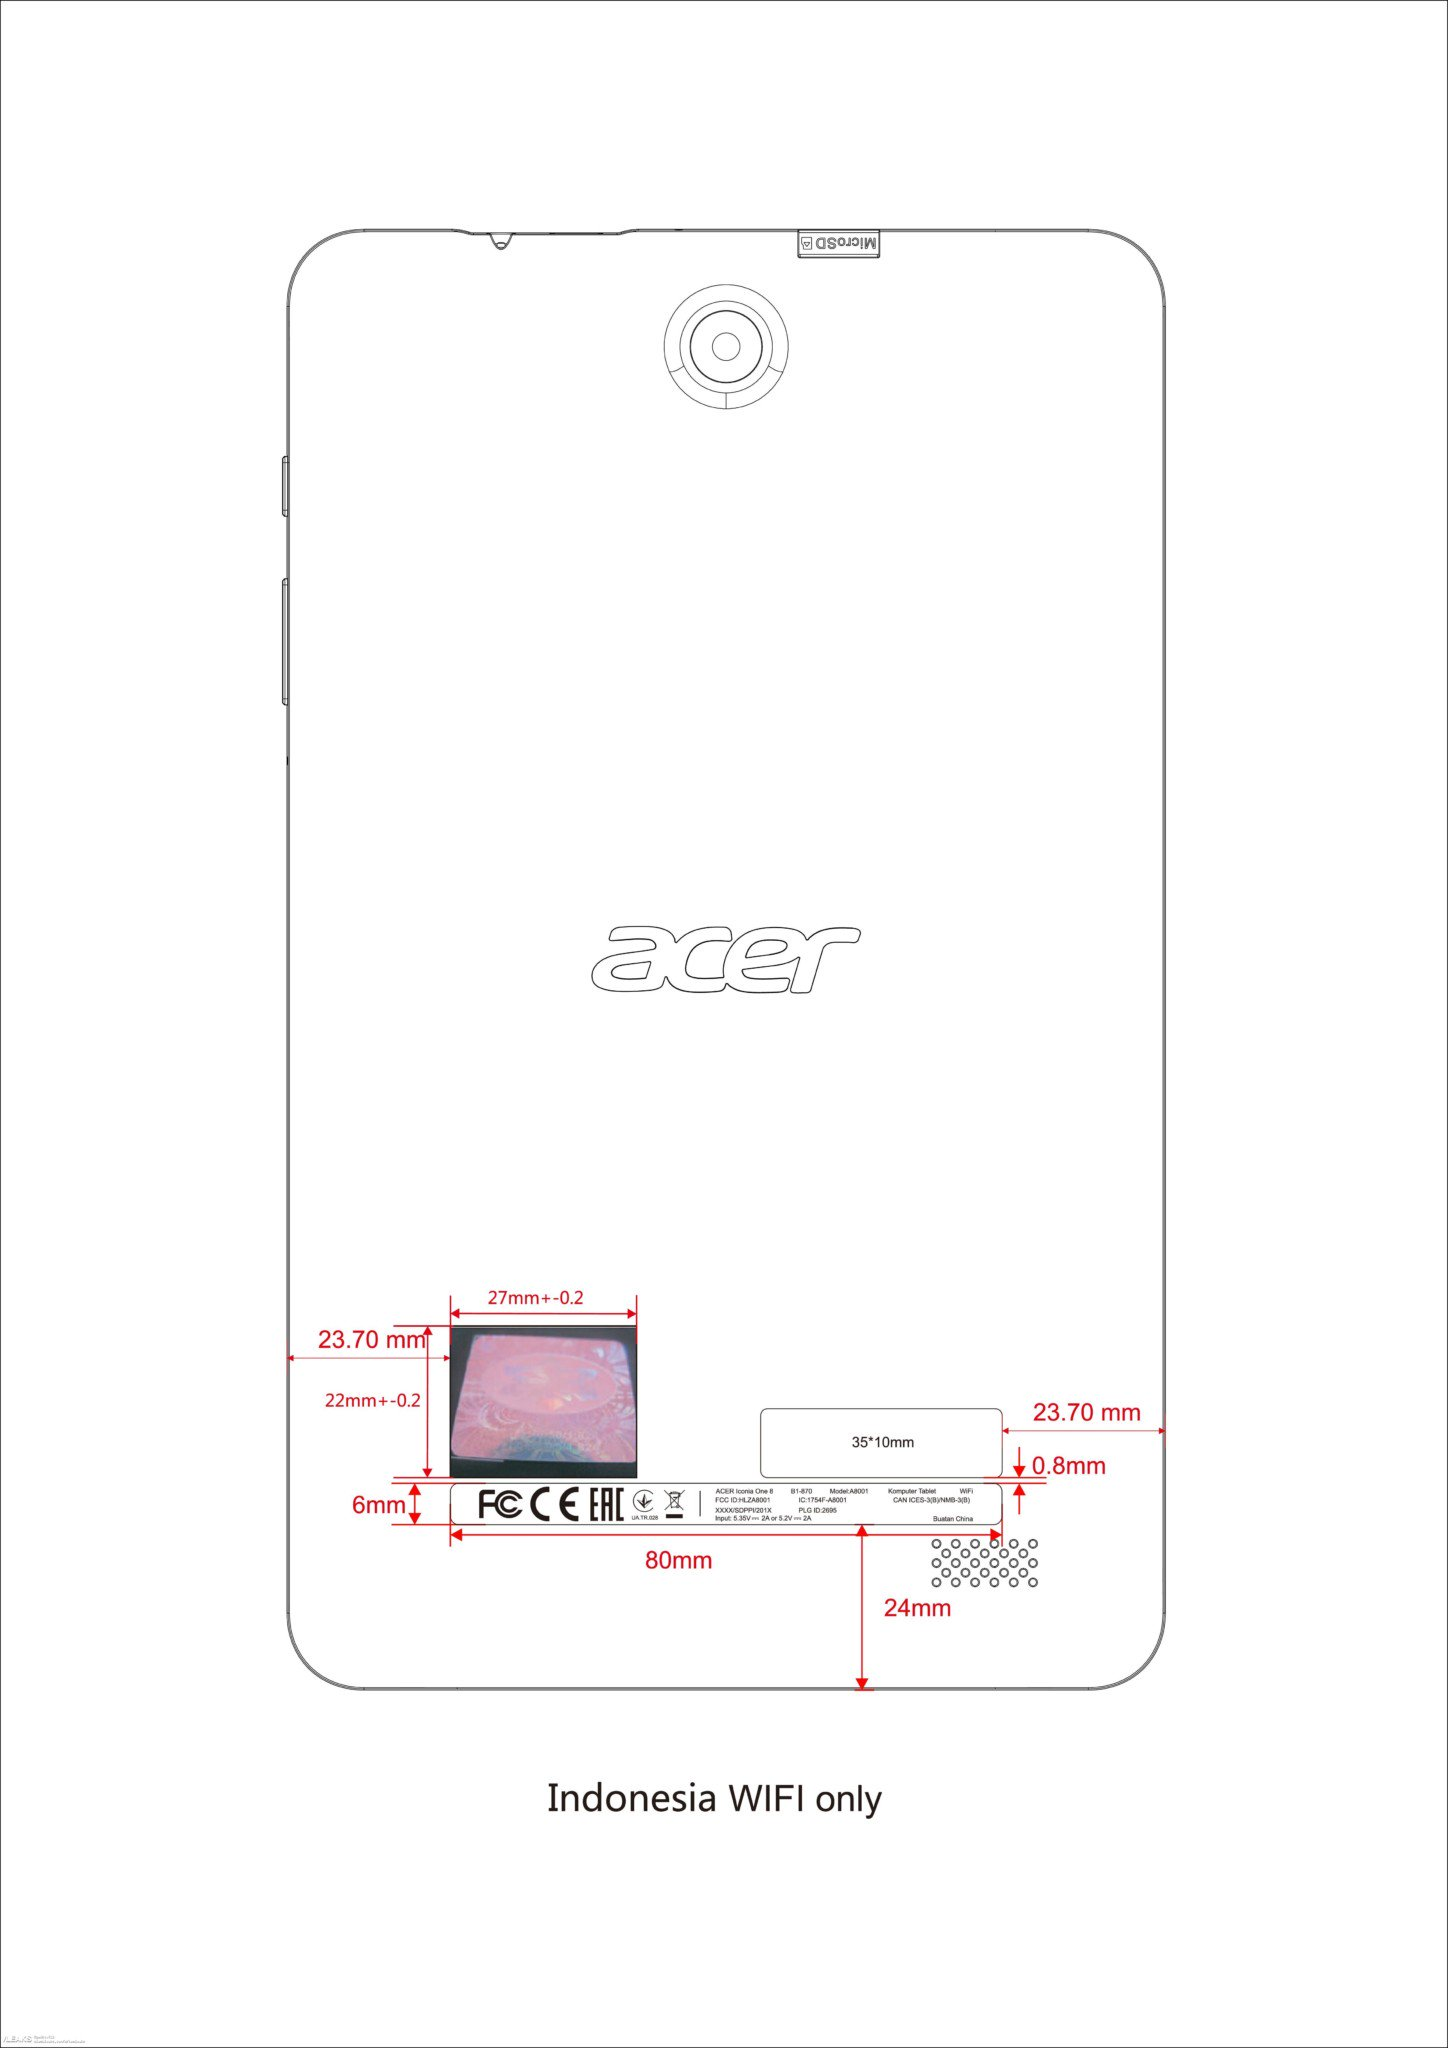 Acer Iconia One 8 specs and design has been listed by the